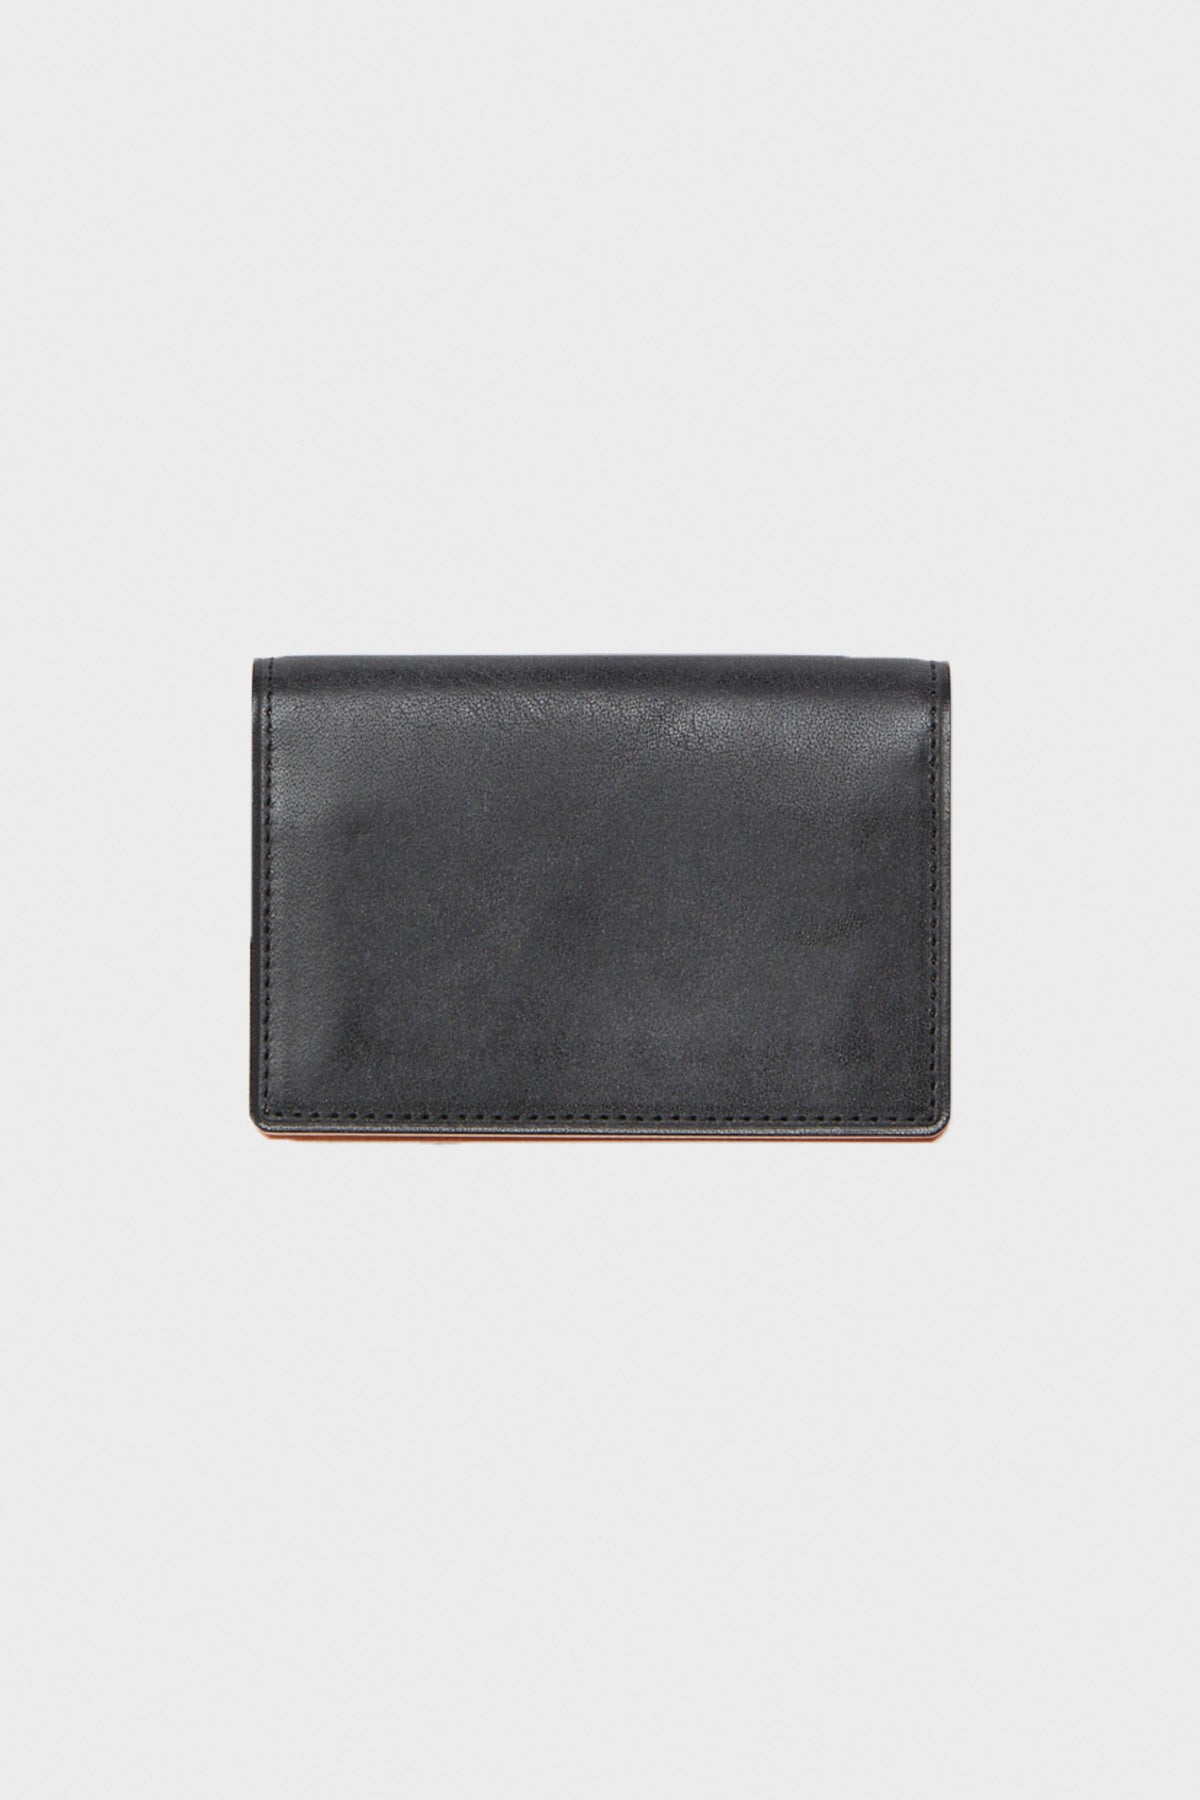 hender scheme Card File - Black